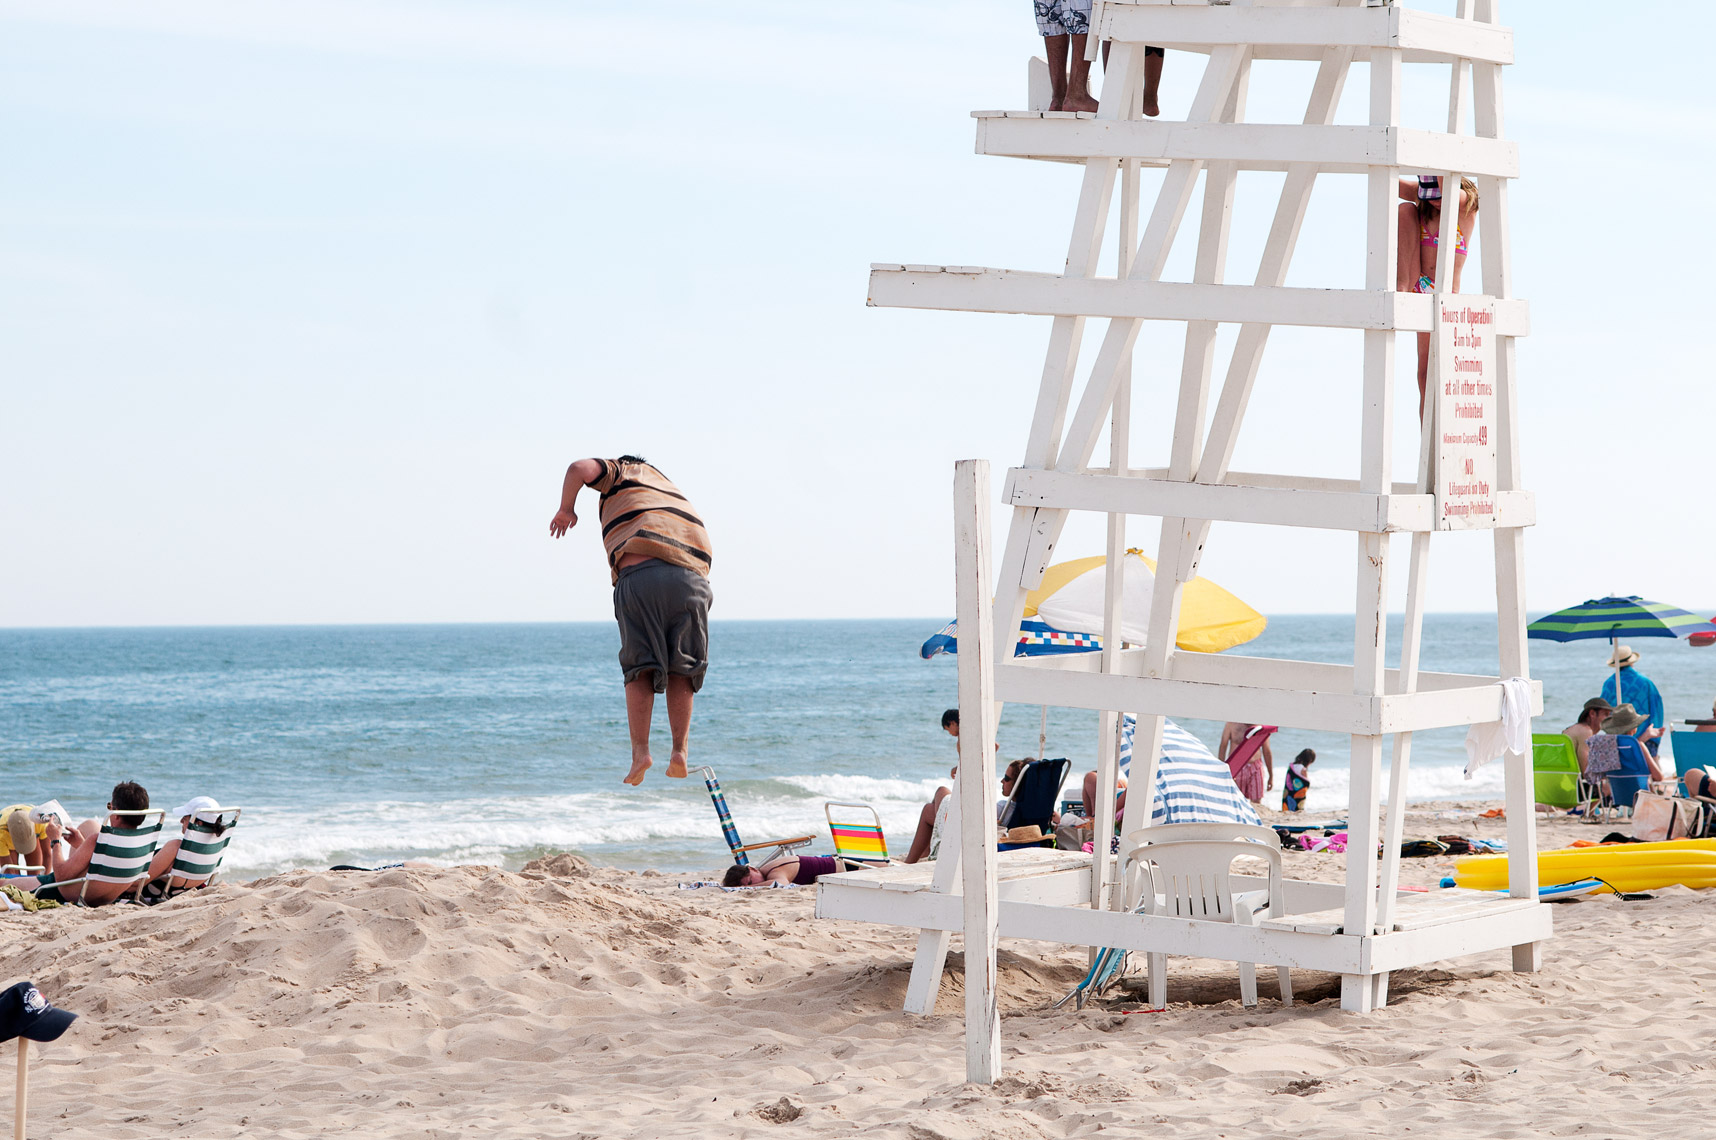 Child leaps off the lifeguard chair, Hamptons, Long Island, New York